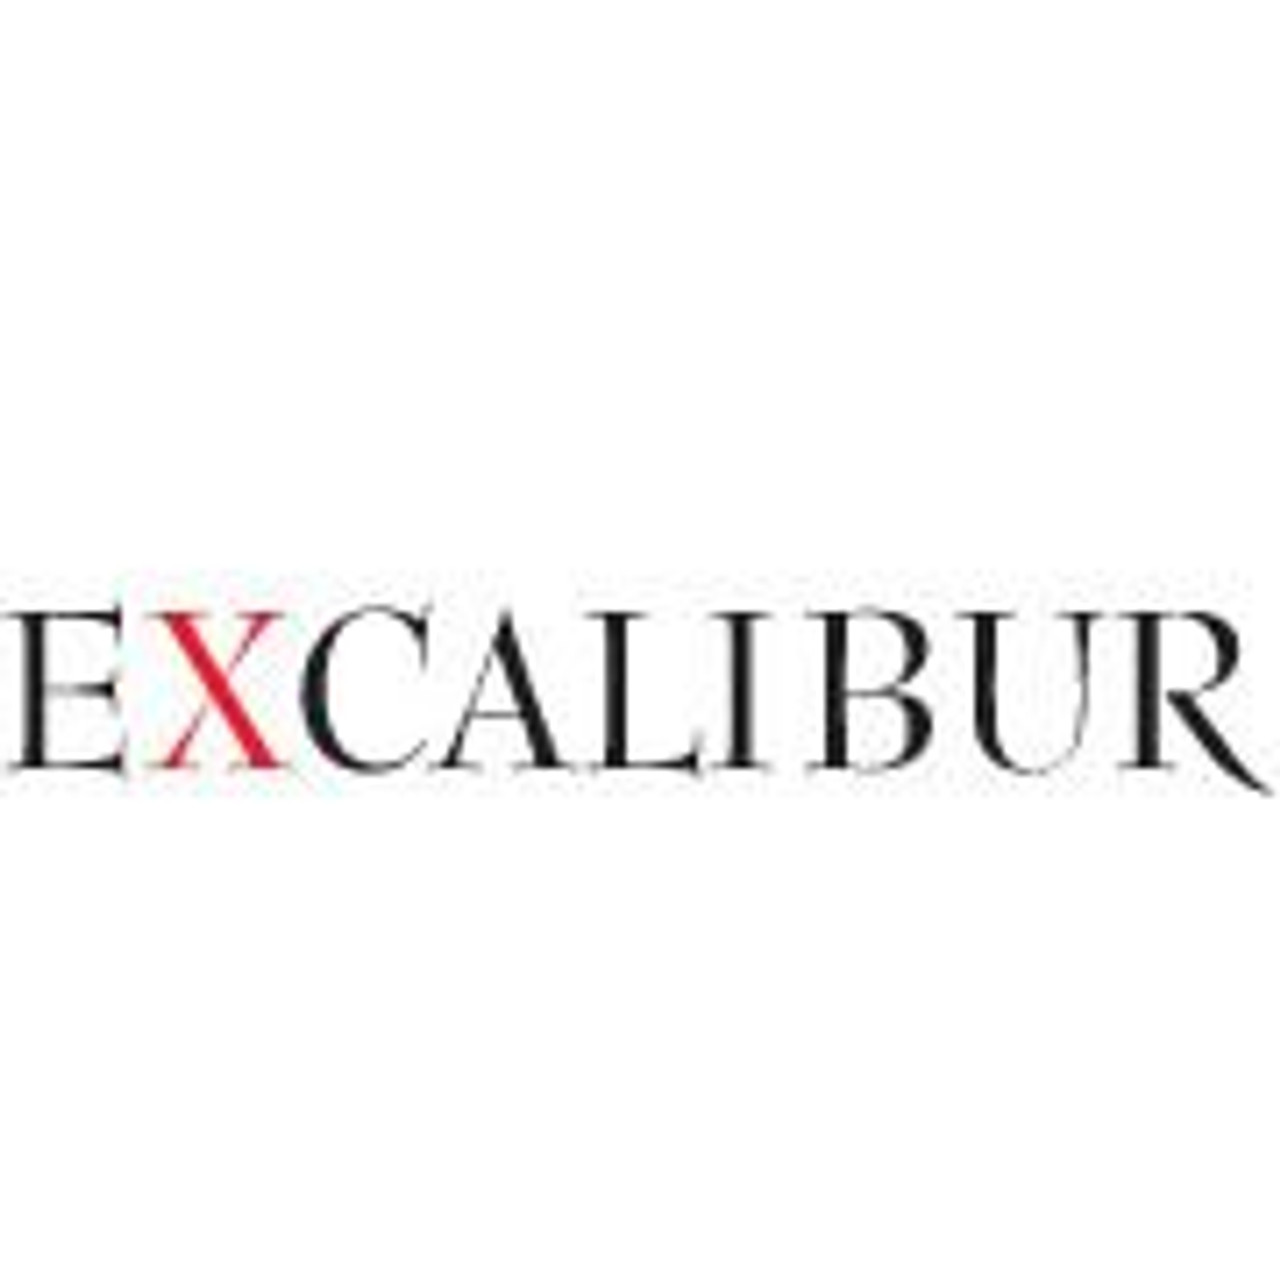 Excalibur No. I Cigars - 7.25 x 54 (Pack of 5)